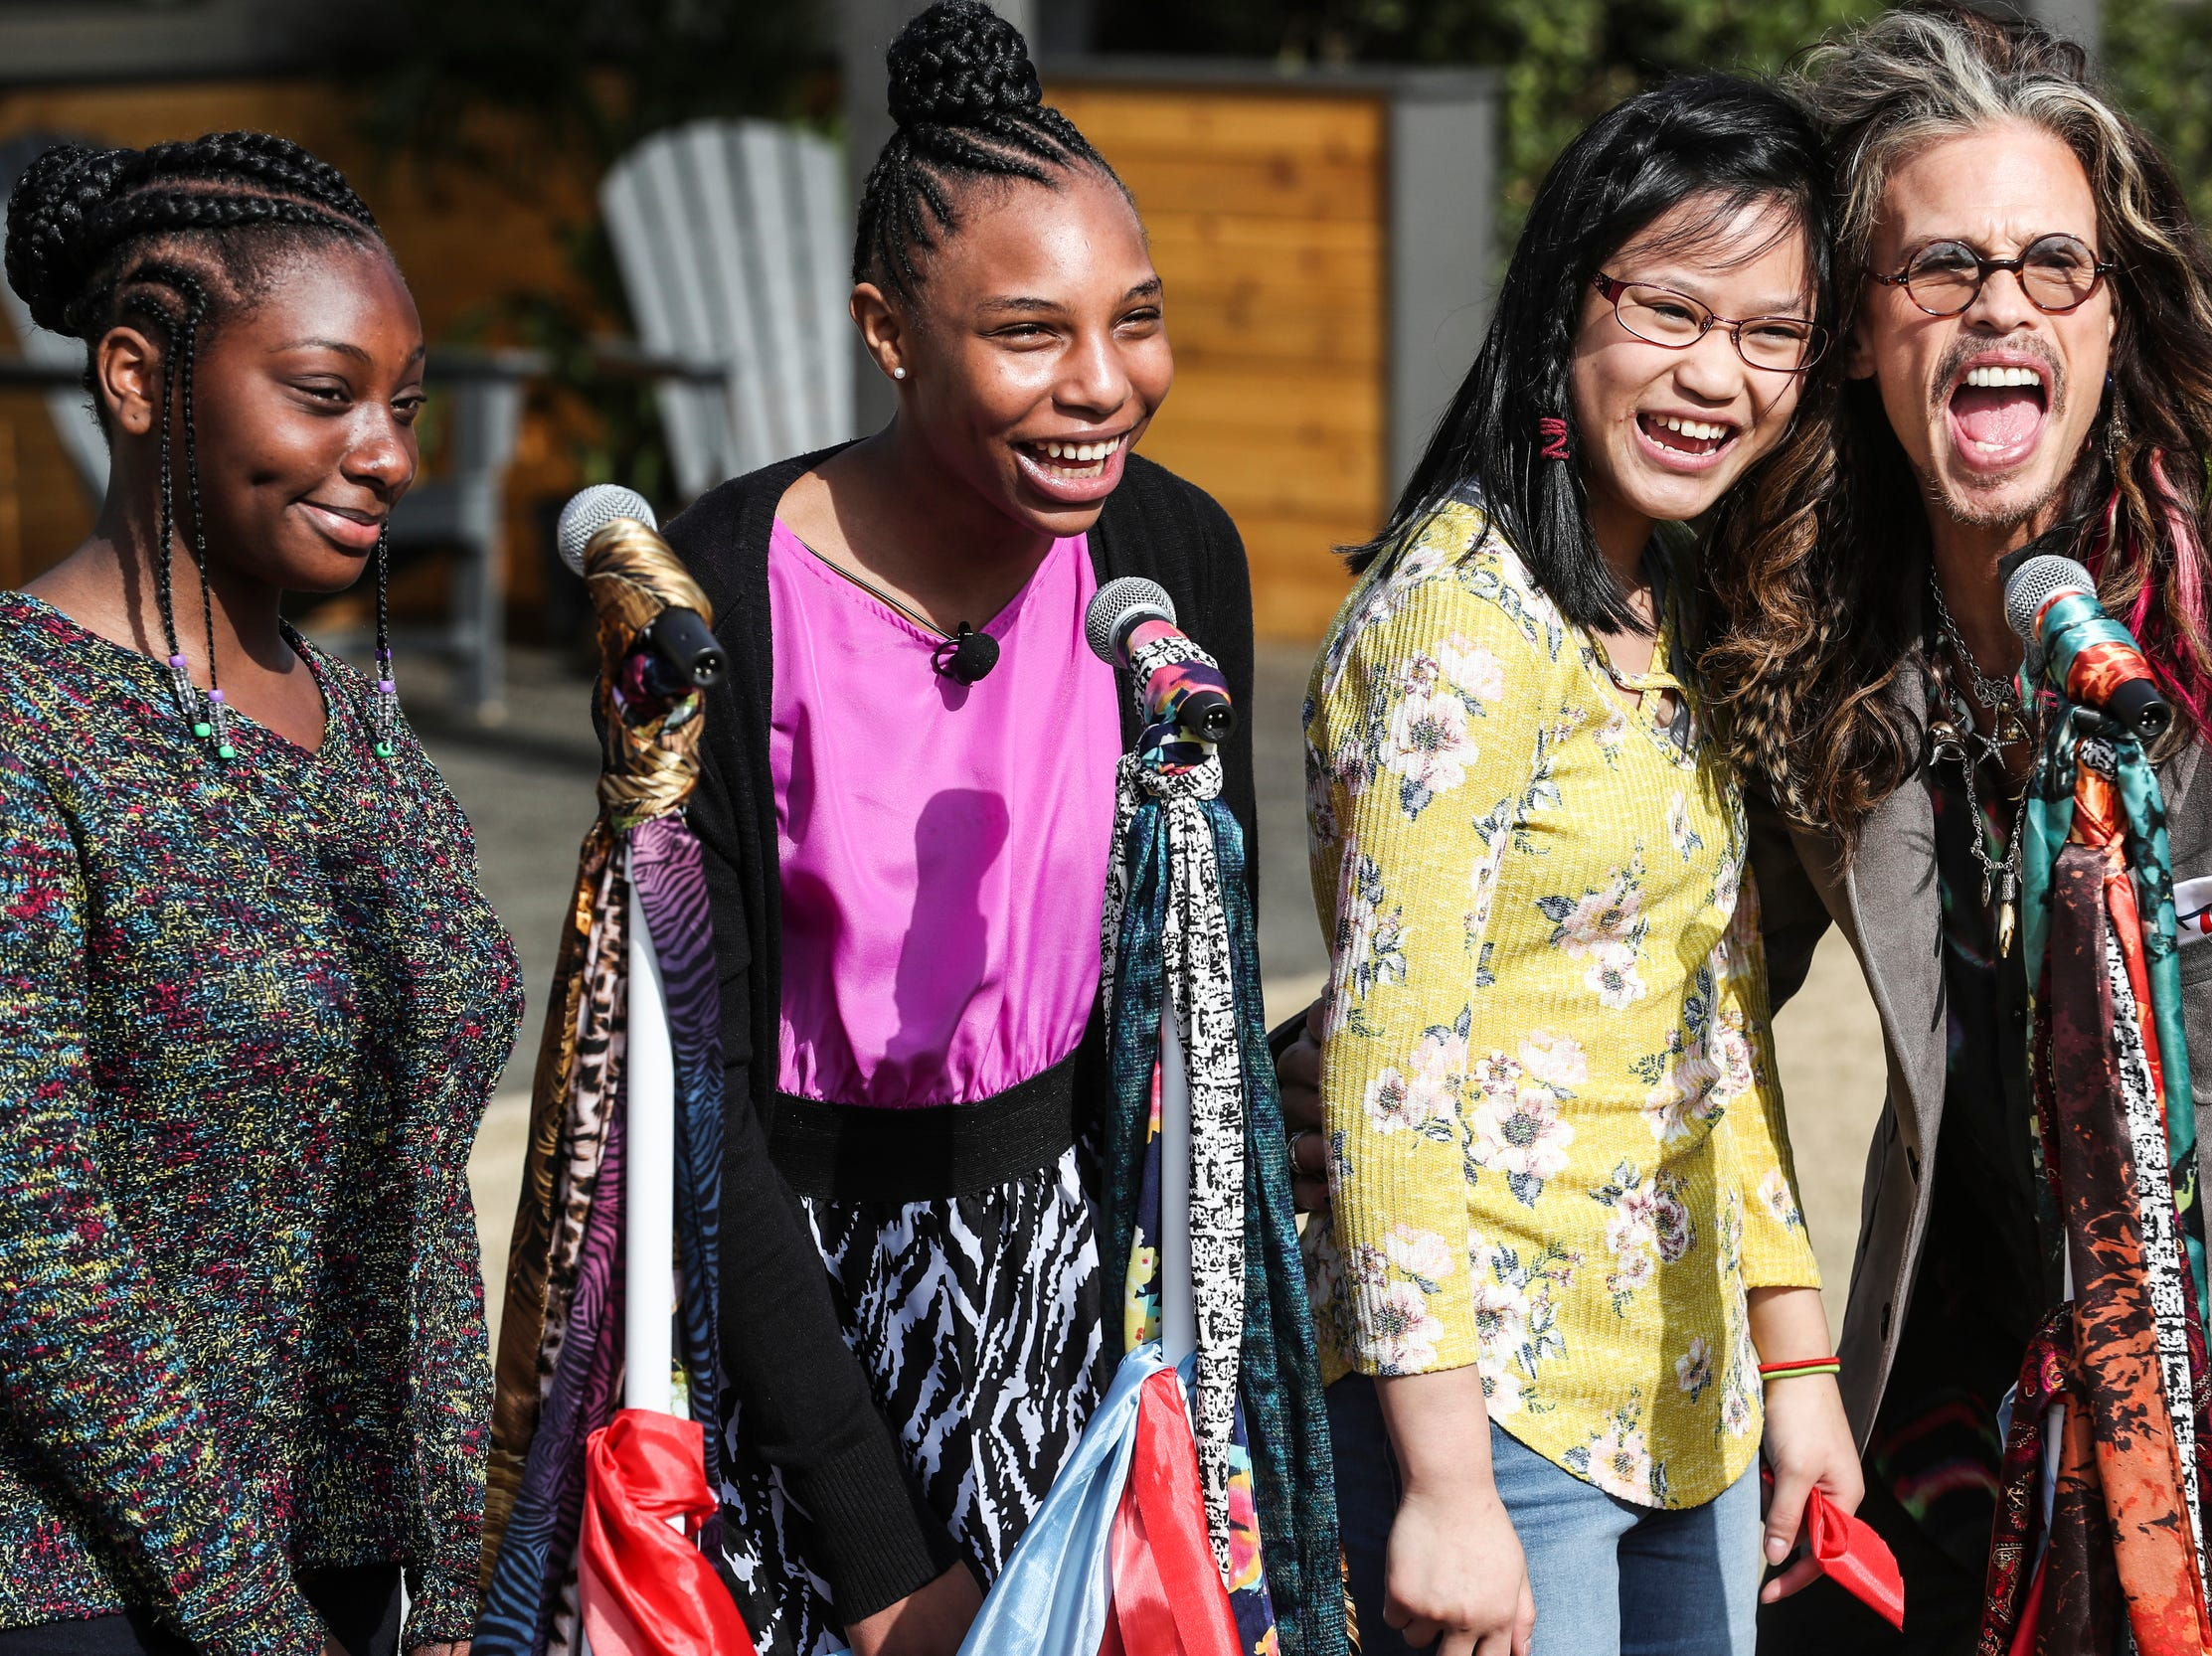 February 04 2019 - From left, Sylvia, JaBrayia, Jenna, and Steven Tyler pose for photos during a scarf-cutting celebration outside of Janie's House at Youth Villages in Bartlett. Janie's Fund paid for the renovations of the existing home for girls and Youth Villages renamed it a Janie's House.